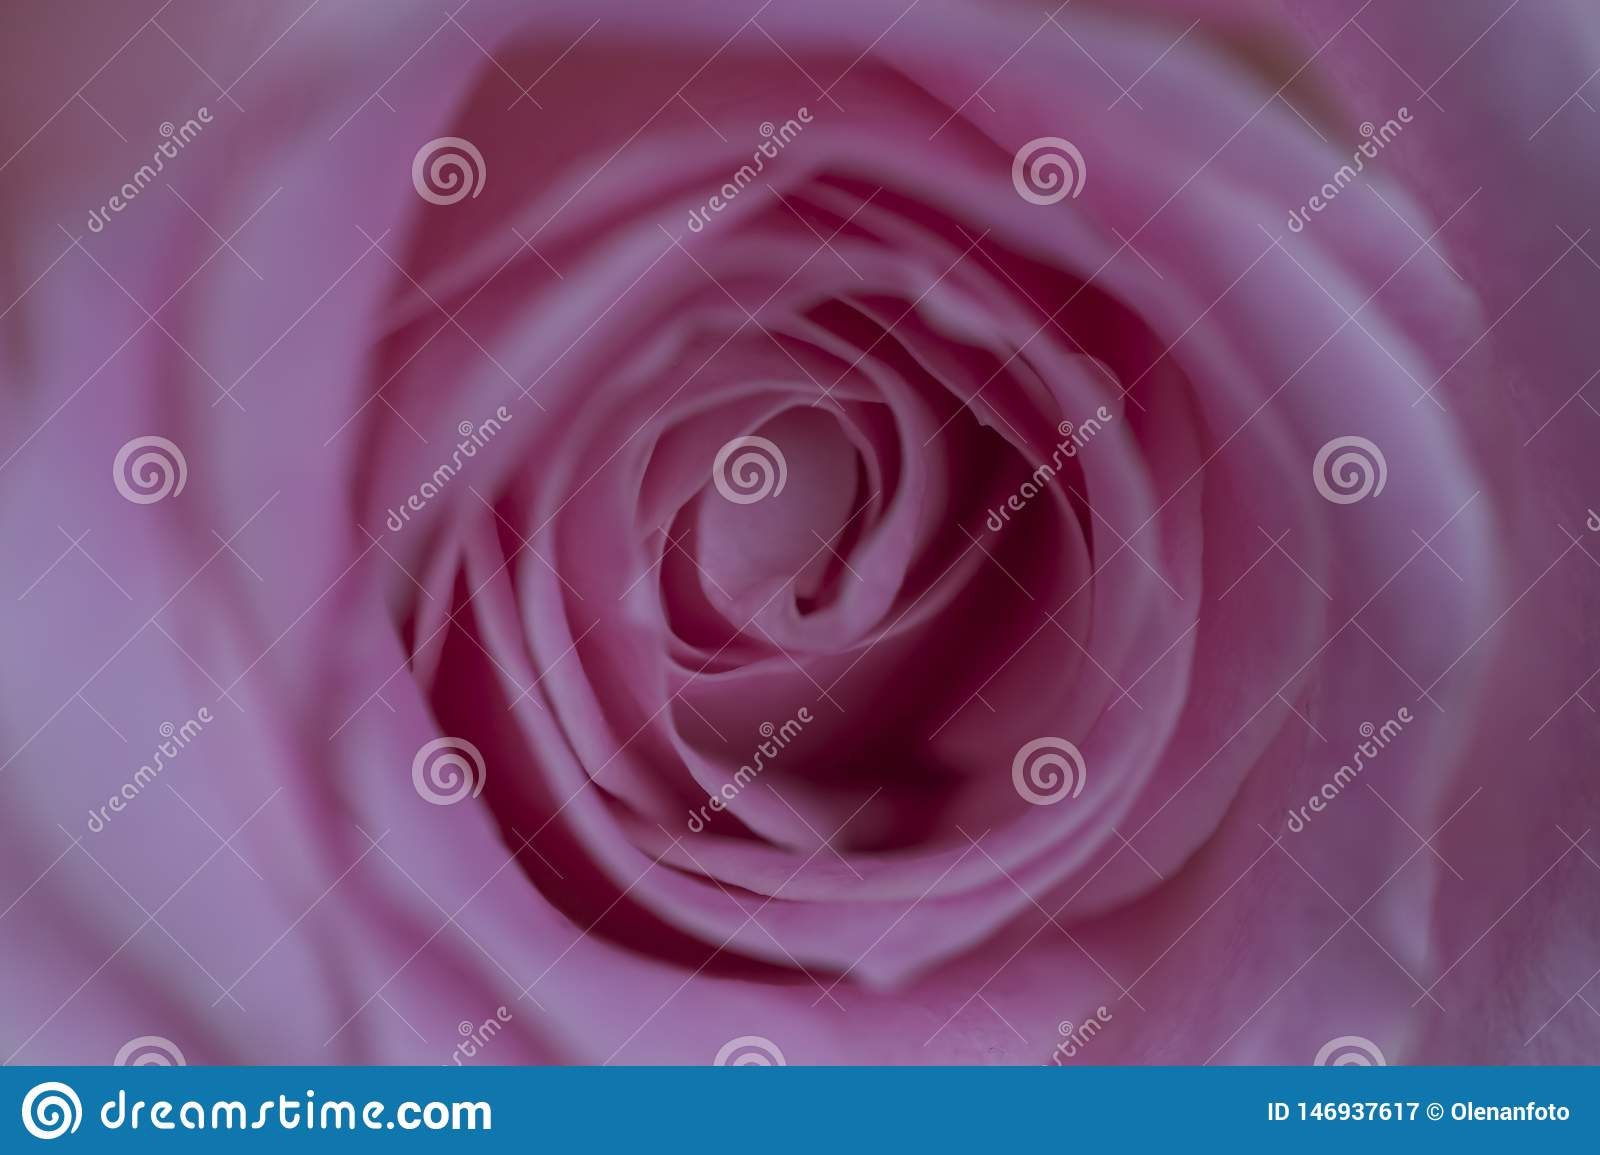 Charming lovely rose, close up